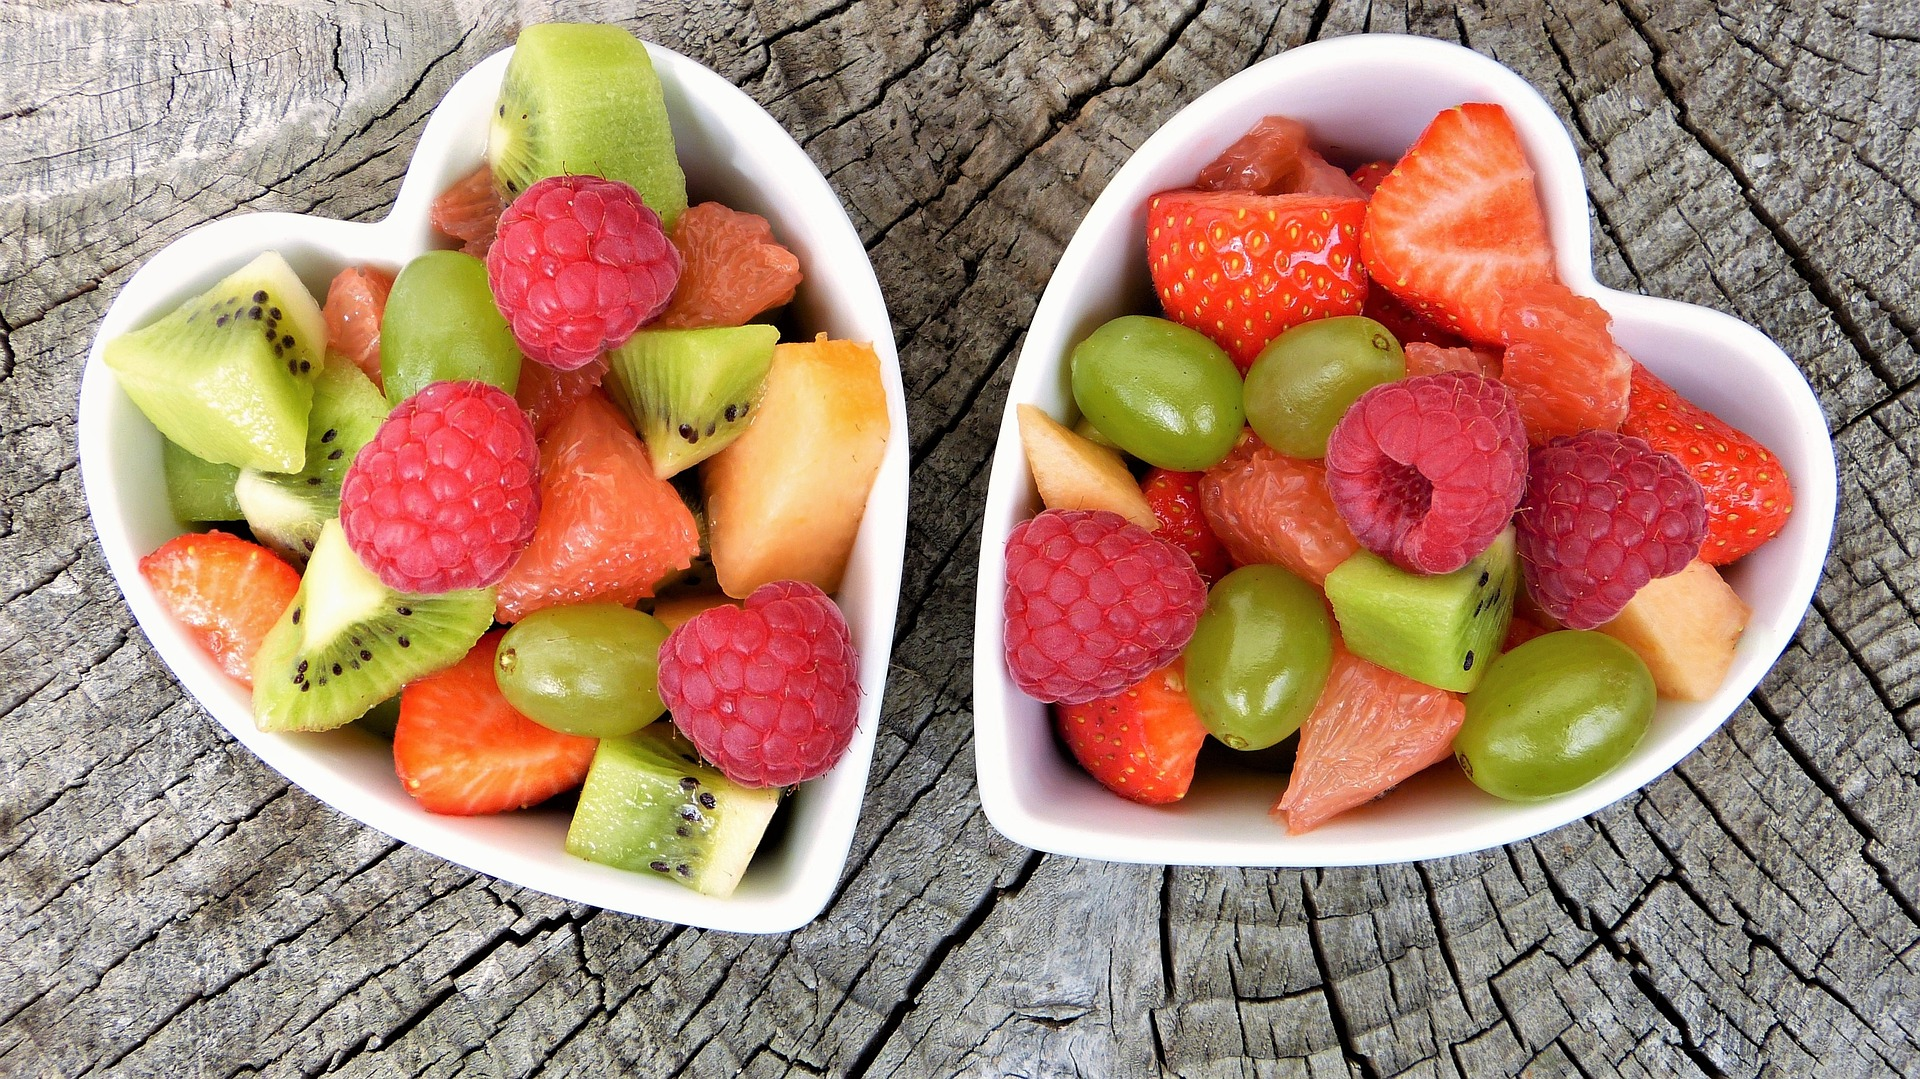 Why Fruit and Fat Loss Might Not Mix